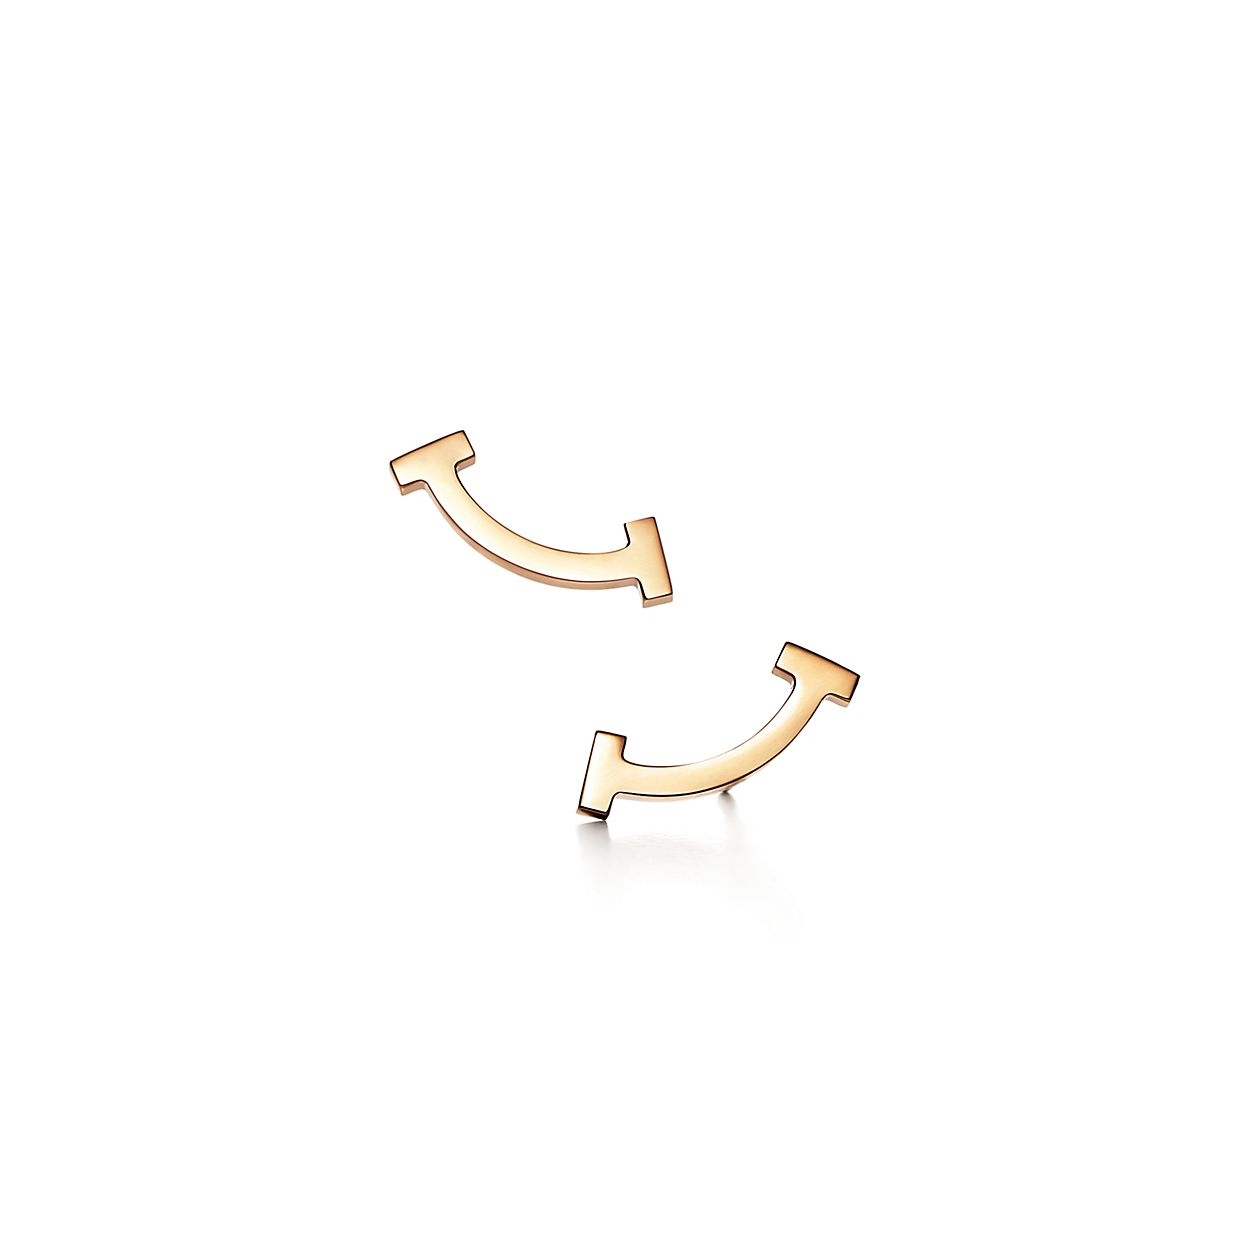 Tiffany T smile earrings in 18k gold with diamonds Tiffany & Co. KujlDPyD2